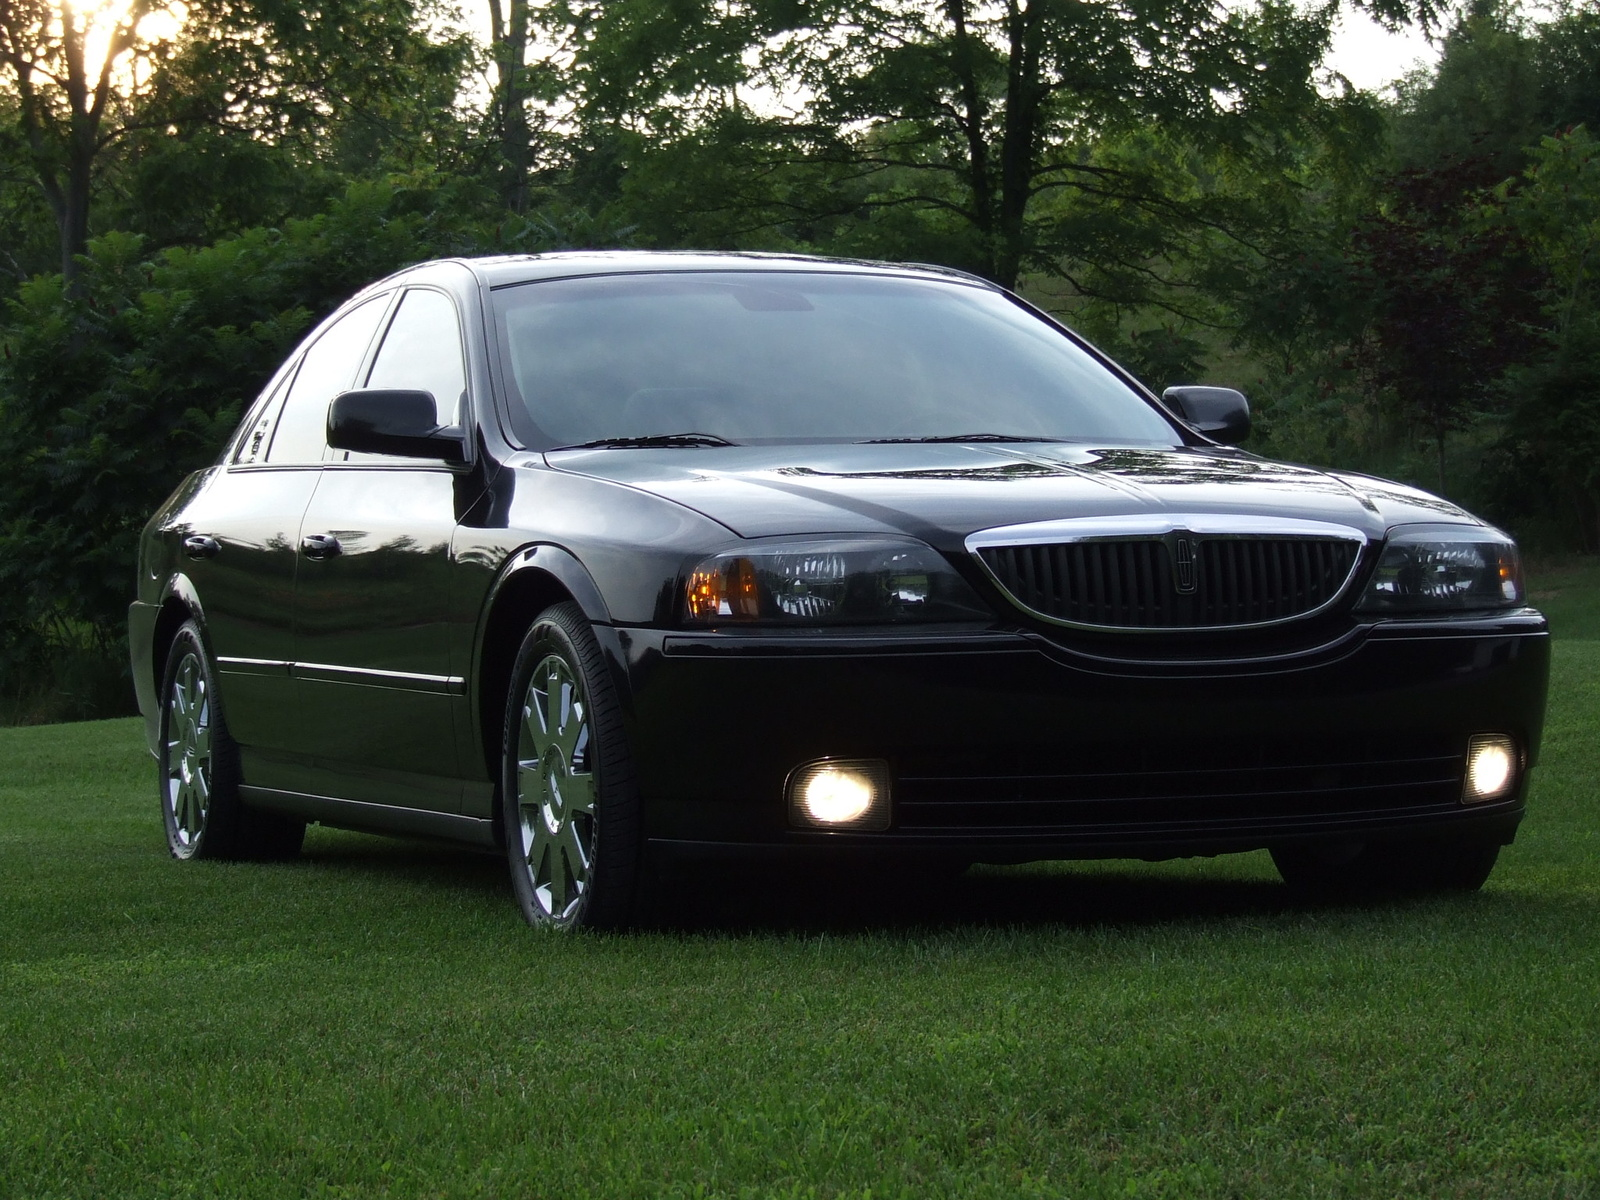 The car of your dreams, Lincoln LS #4